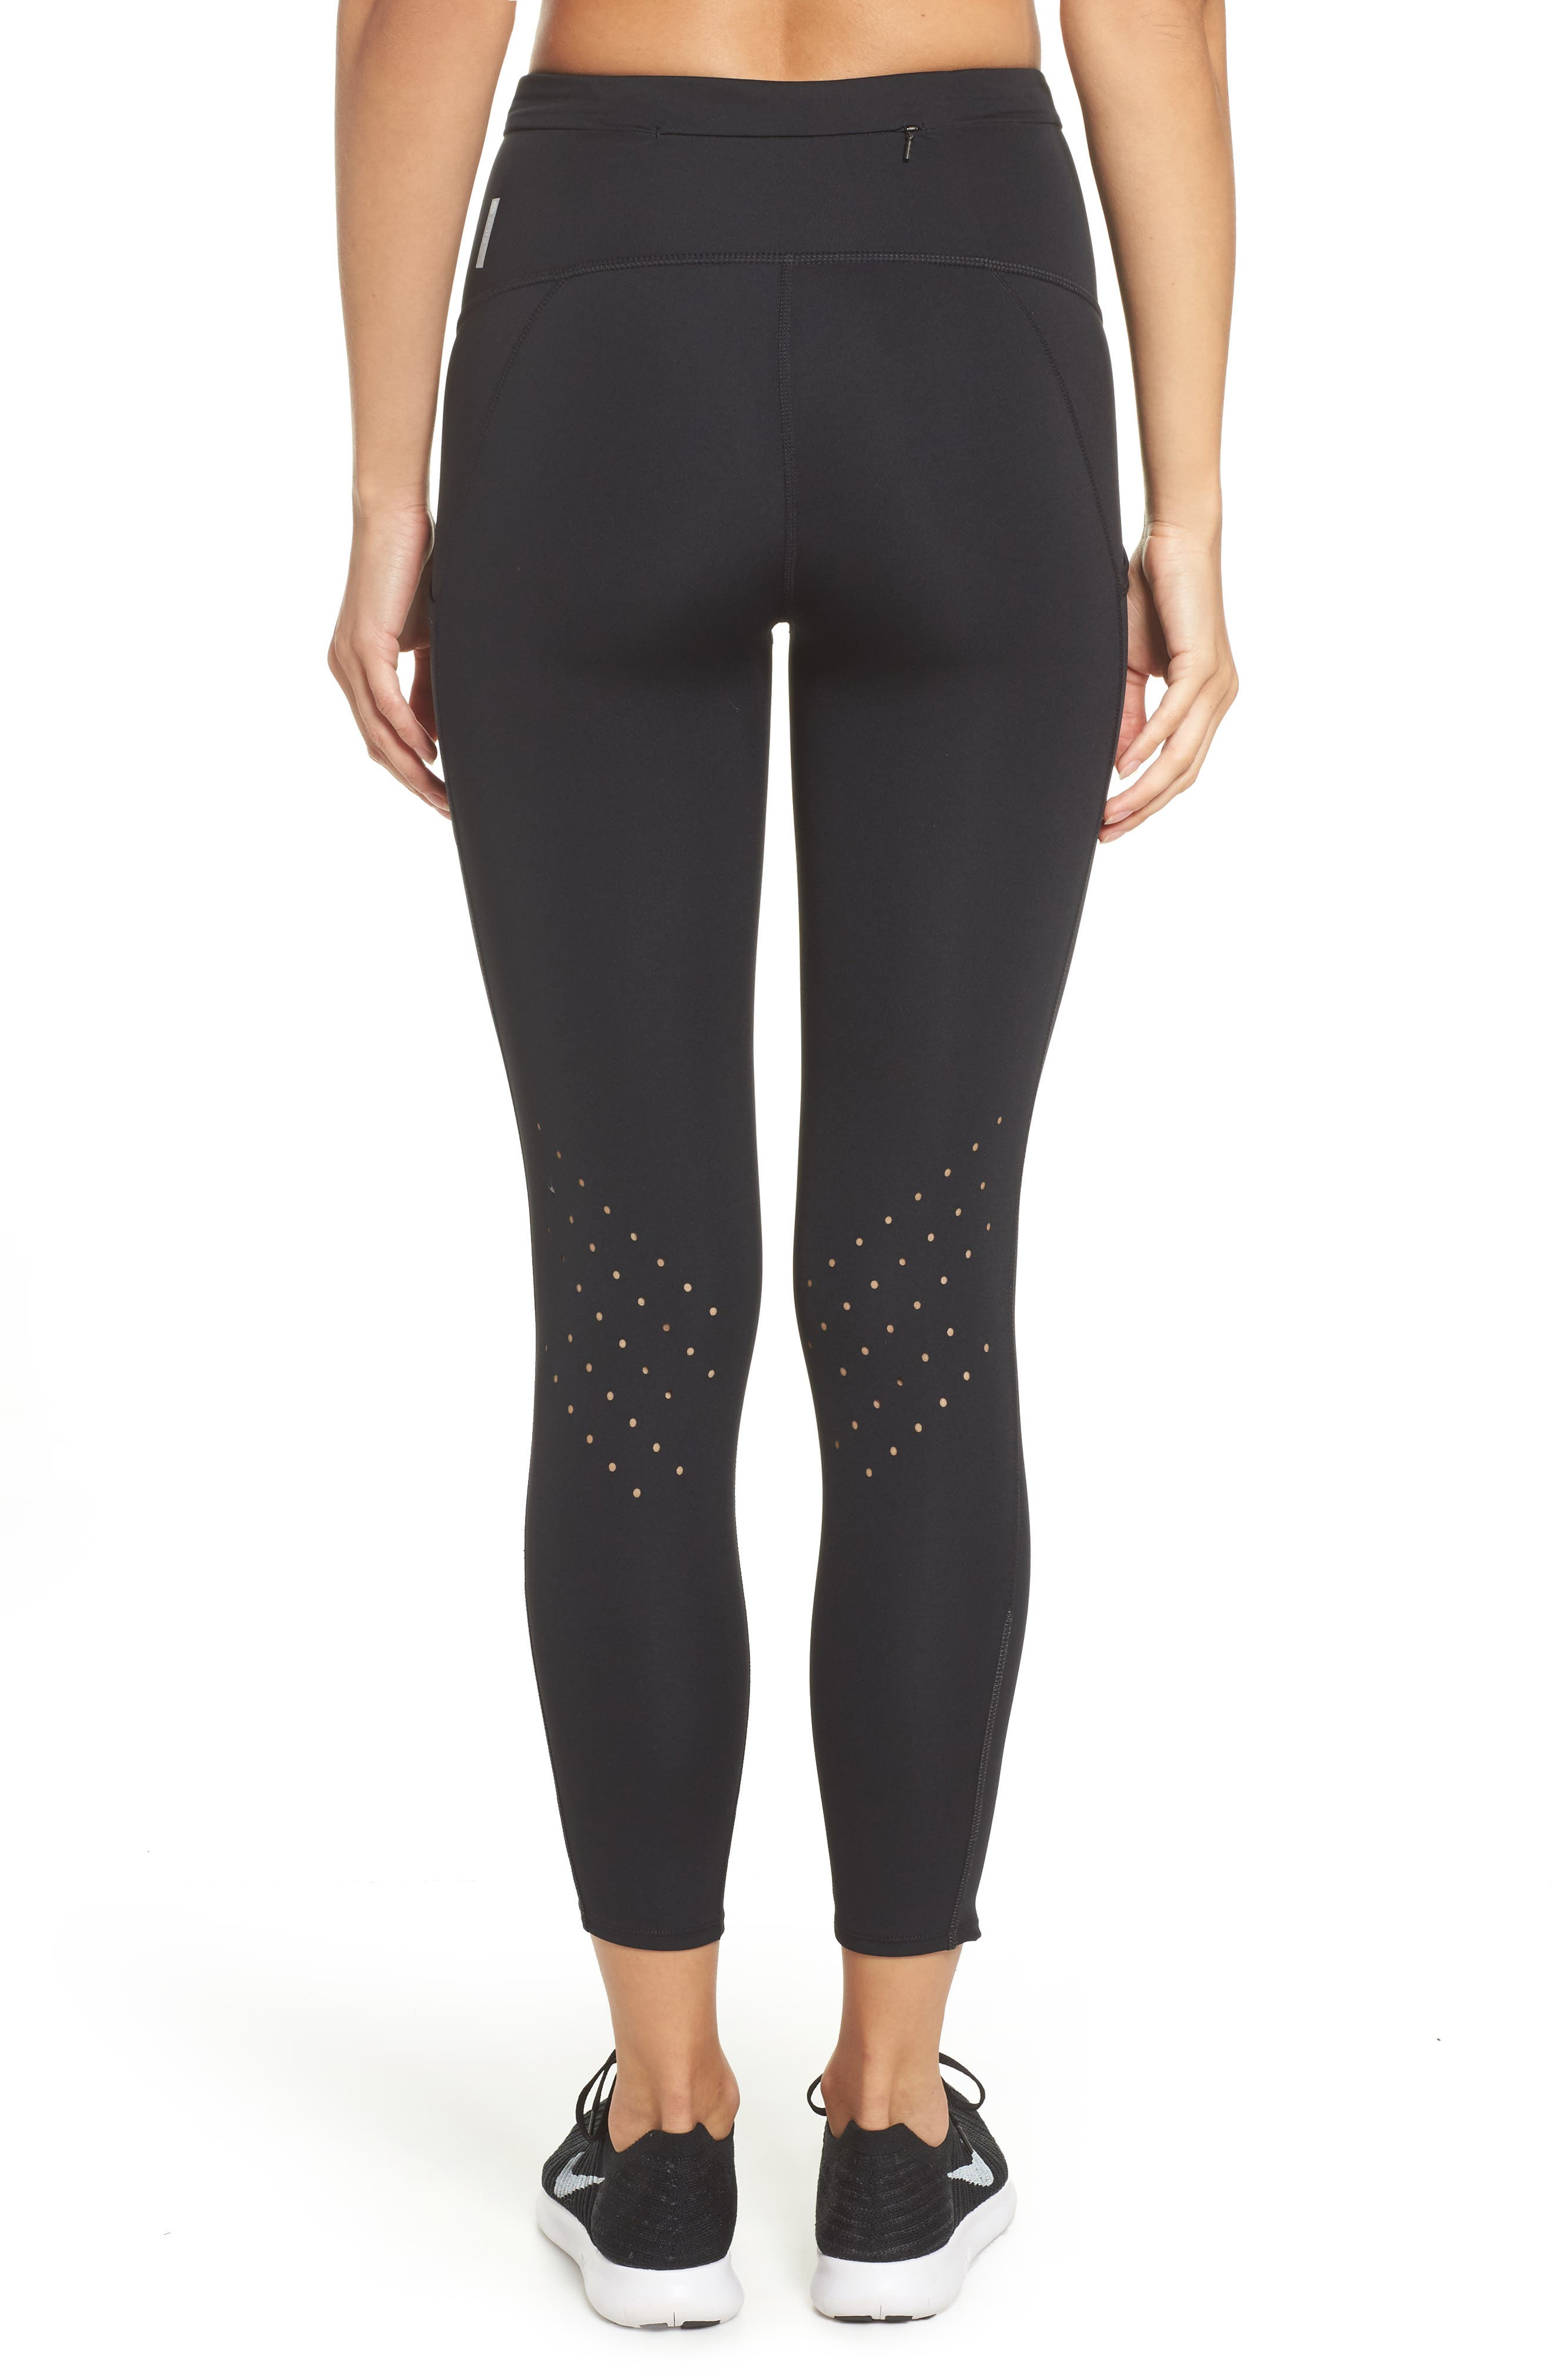 Sprint In High Waist Midi Leggings,                             Alternate thumbnail 2, color,                             001